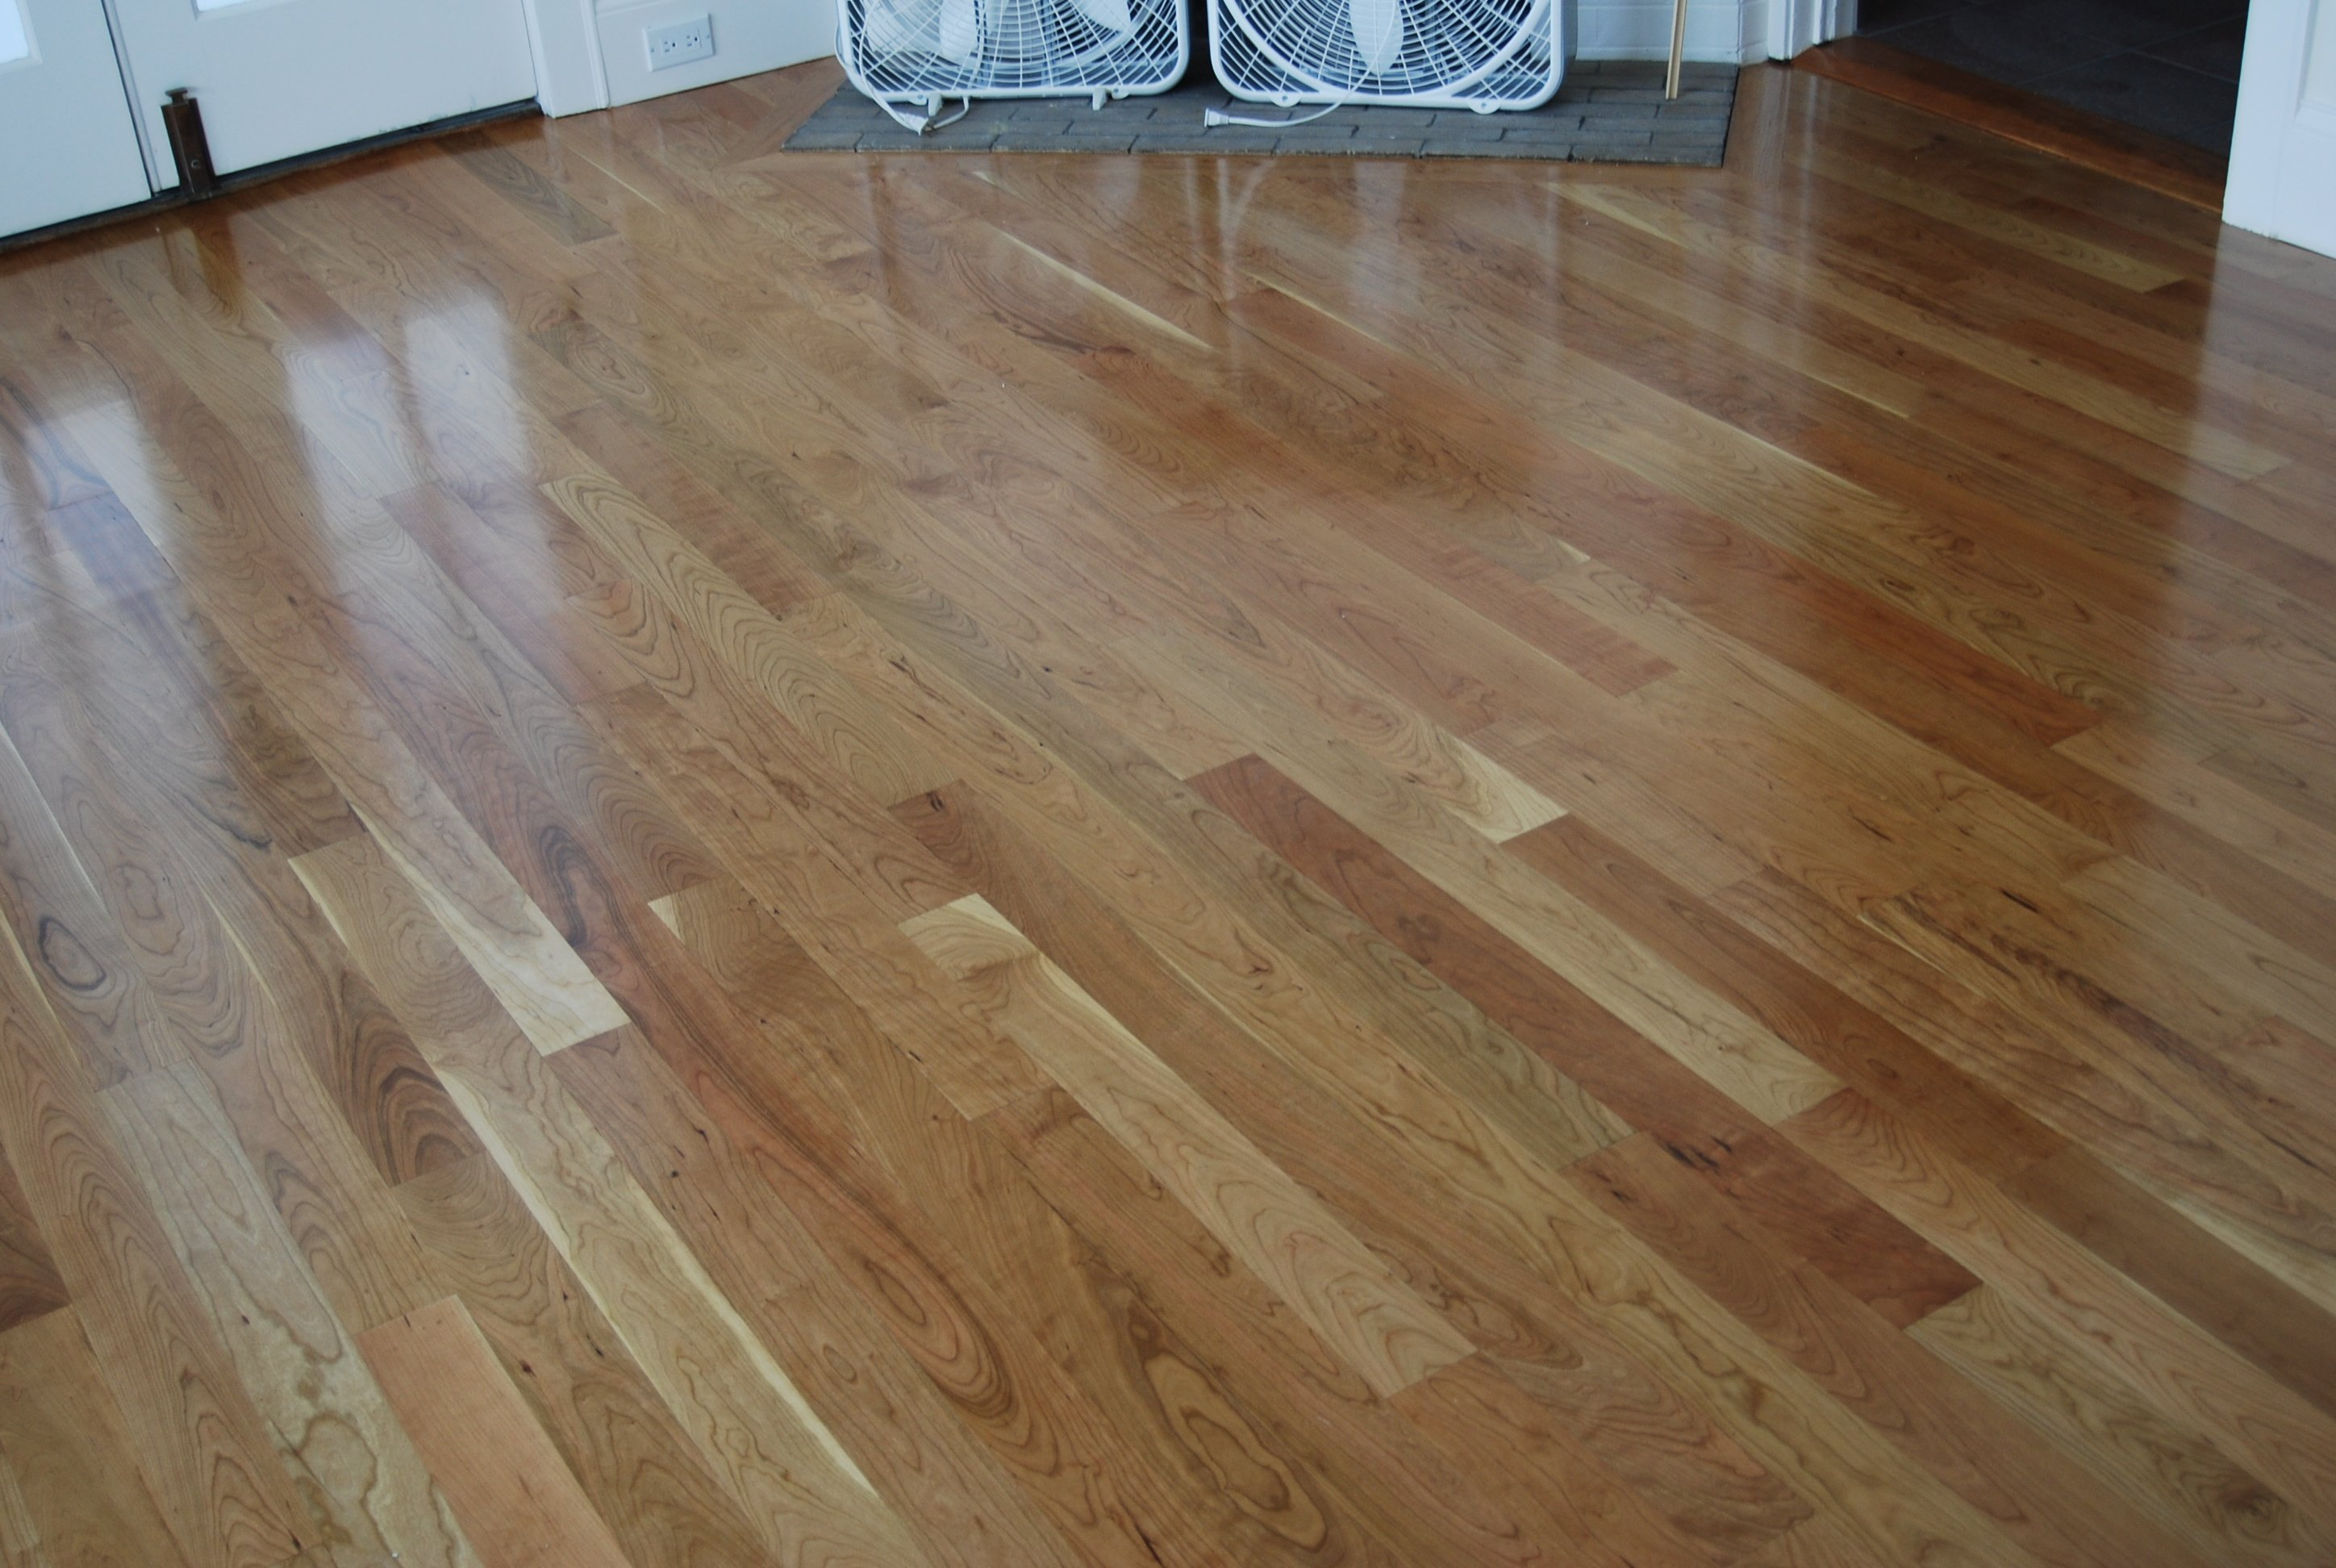 Hardwood Floors Manchester & Concord, NH